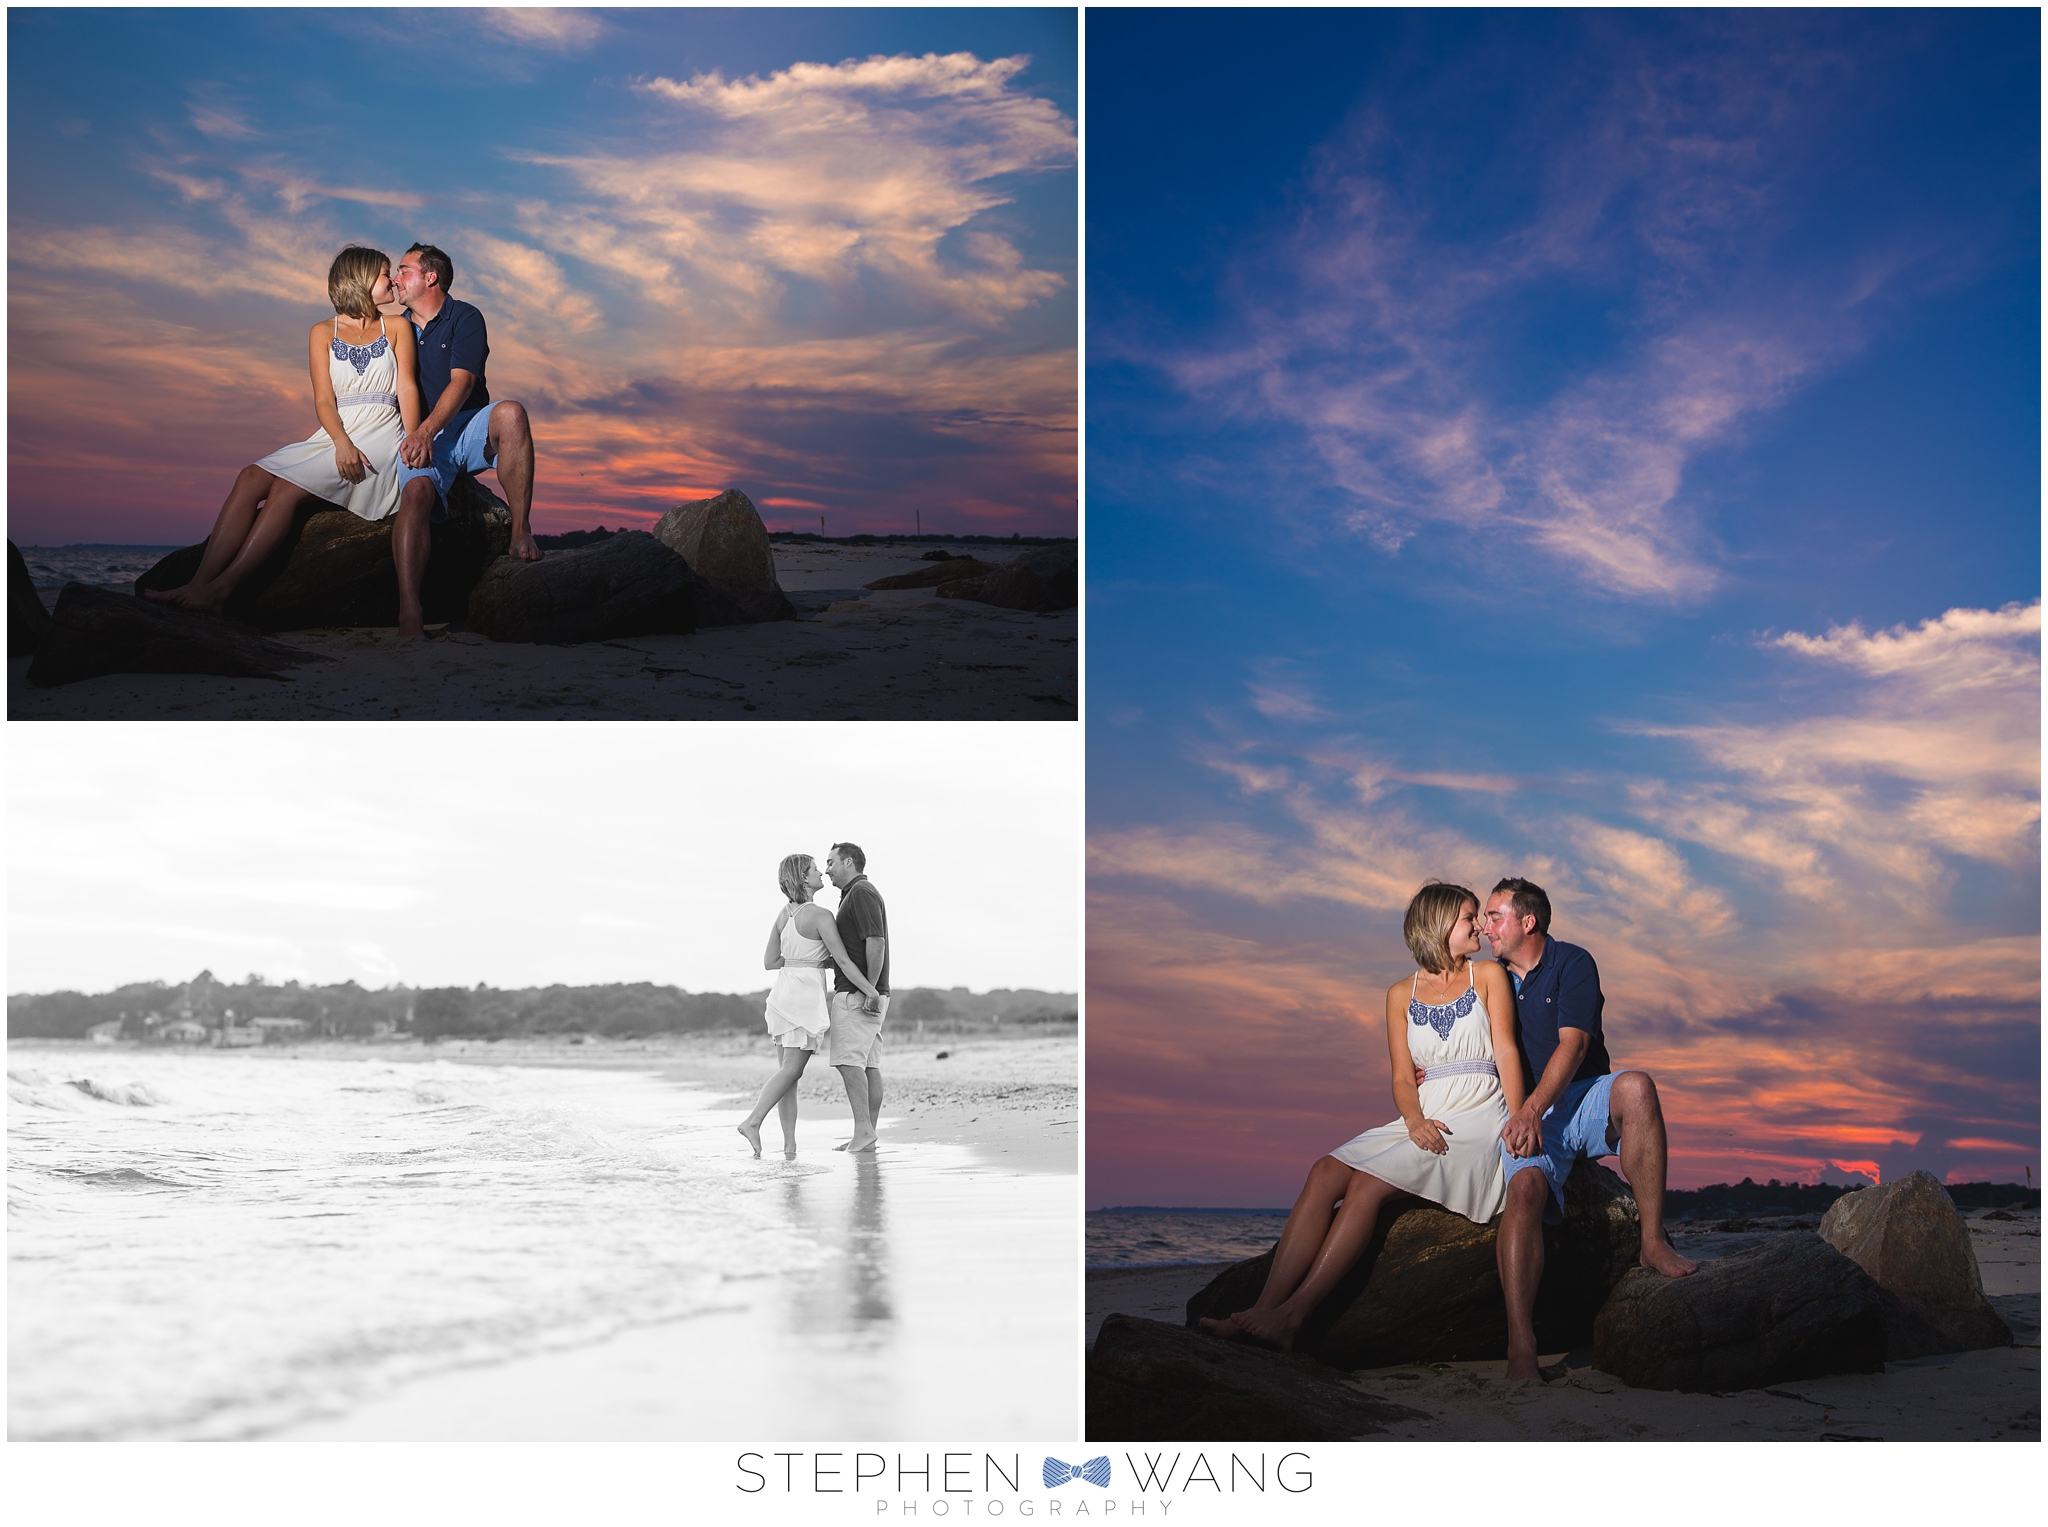 stephen wang photography connecticut wedding photographer harkness park engagement session ct shoreline eolia mansion _0008.jpg